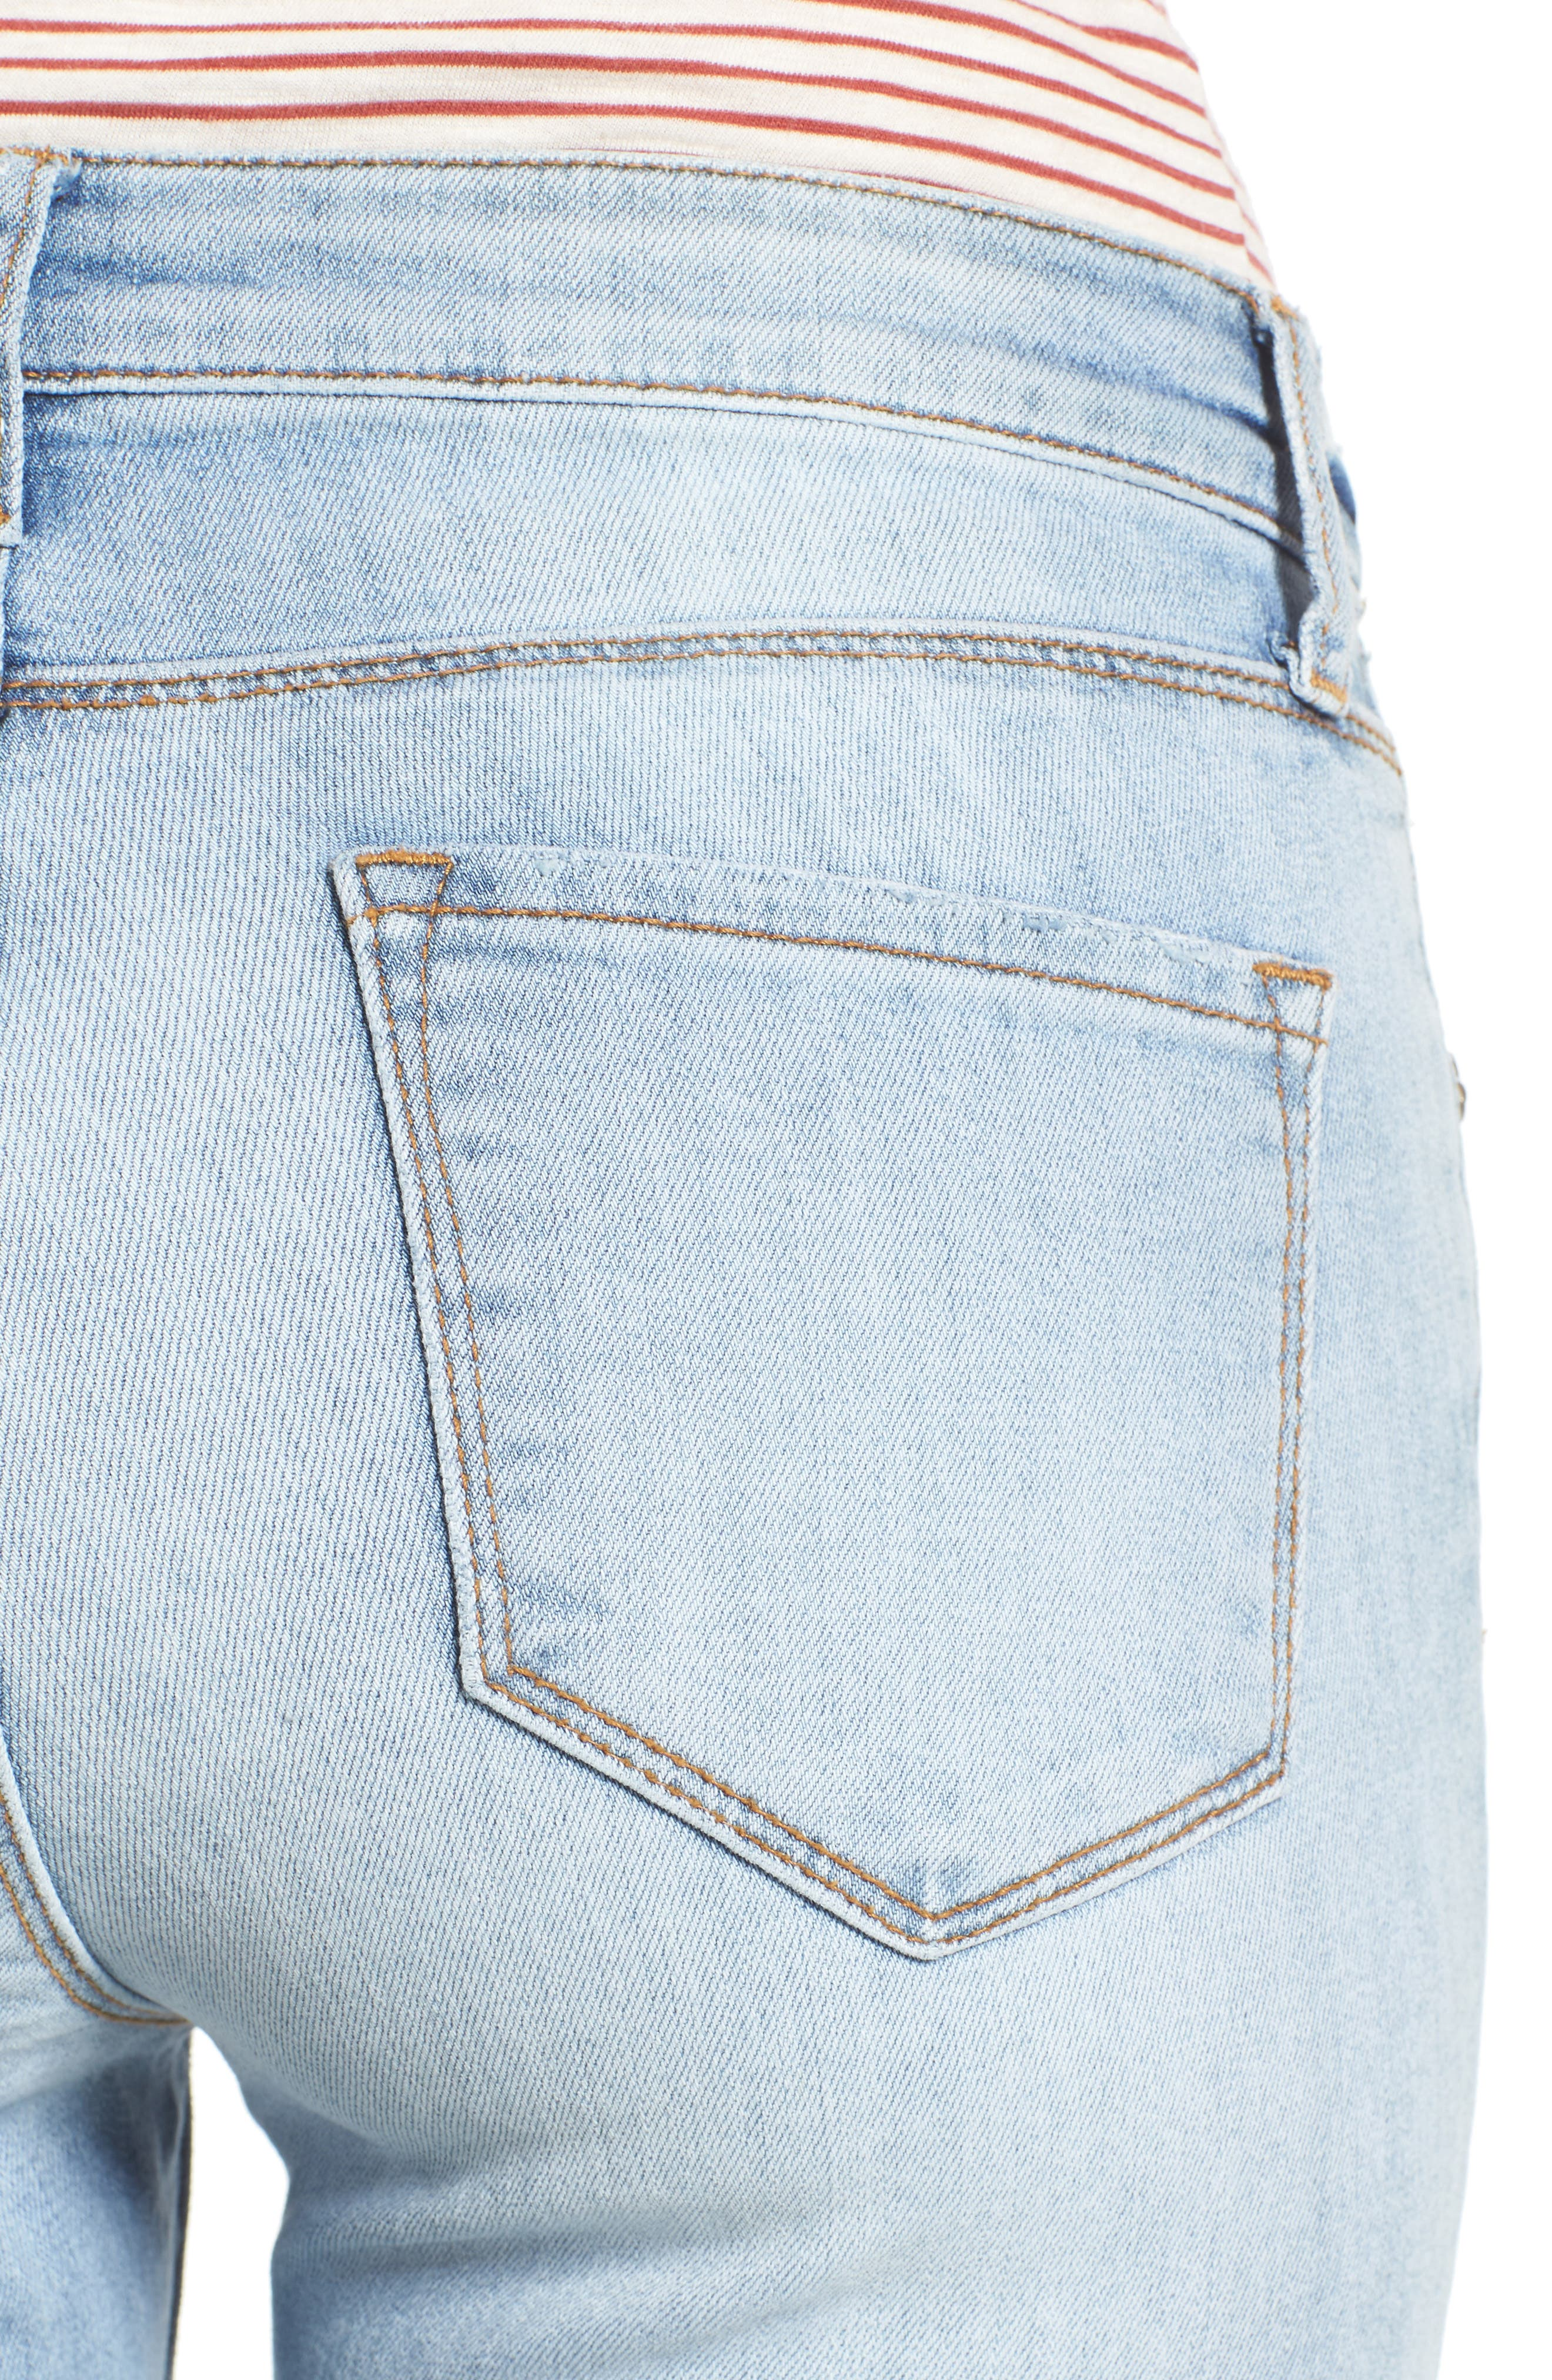 Alternate Image 4  - KUT from the Kloth Reese Uneven Hem Straight Ankle Jeans (Celebratory)